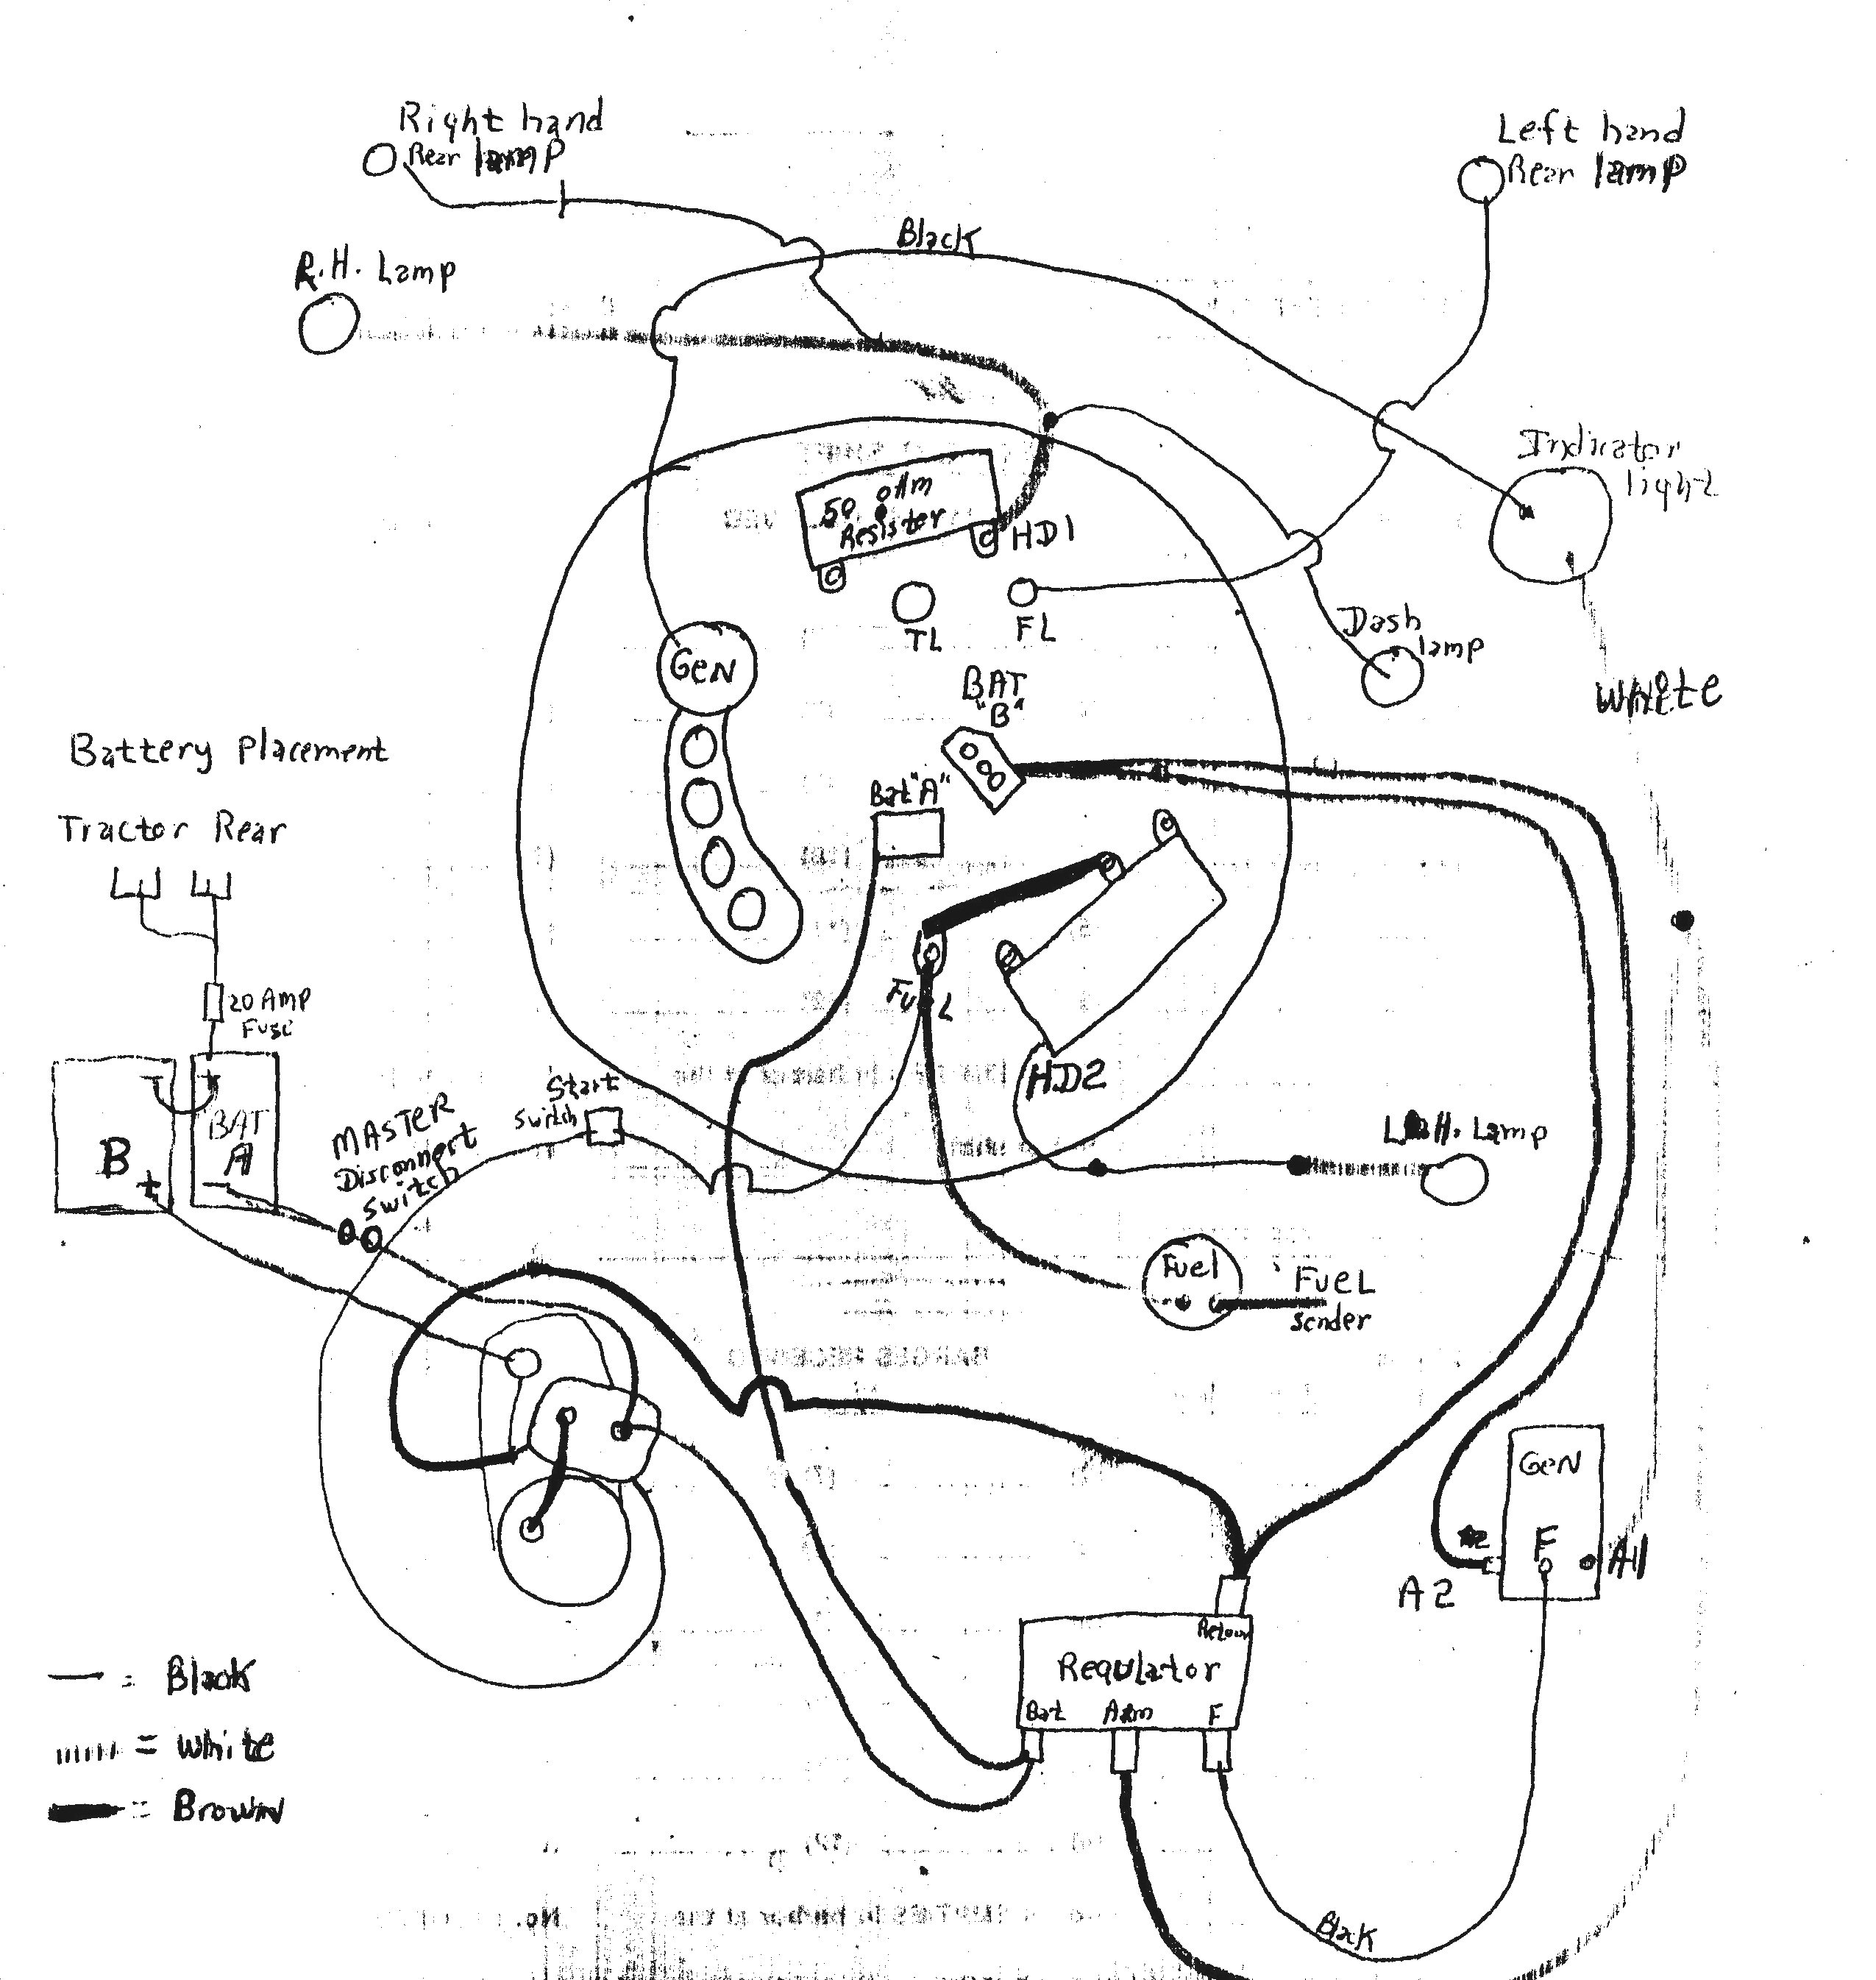 24volt_wiring_diagram 24v alternator wiring diagram 12v bilge pump wiring diagram \u2022 free 24 volt alternator wiring diagram at edmiracle.co